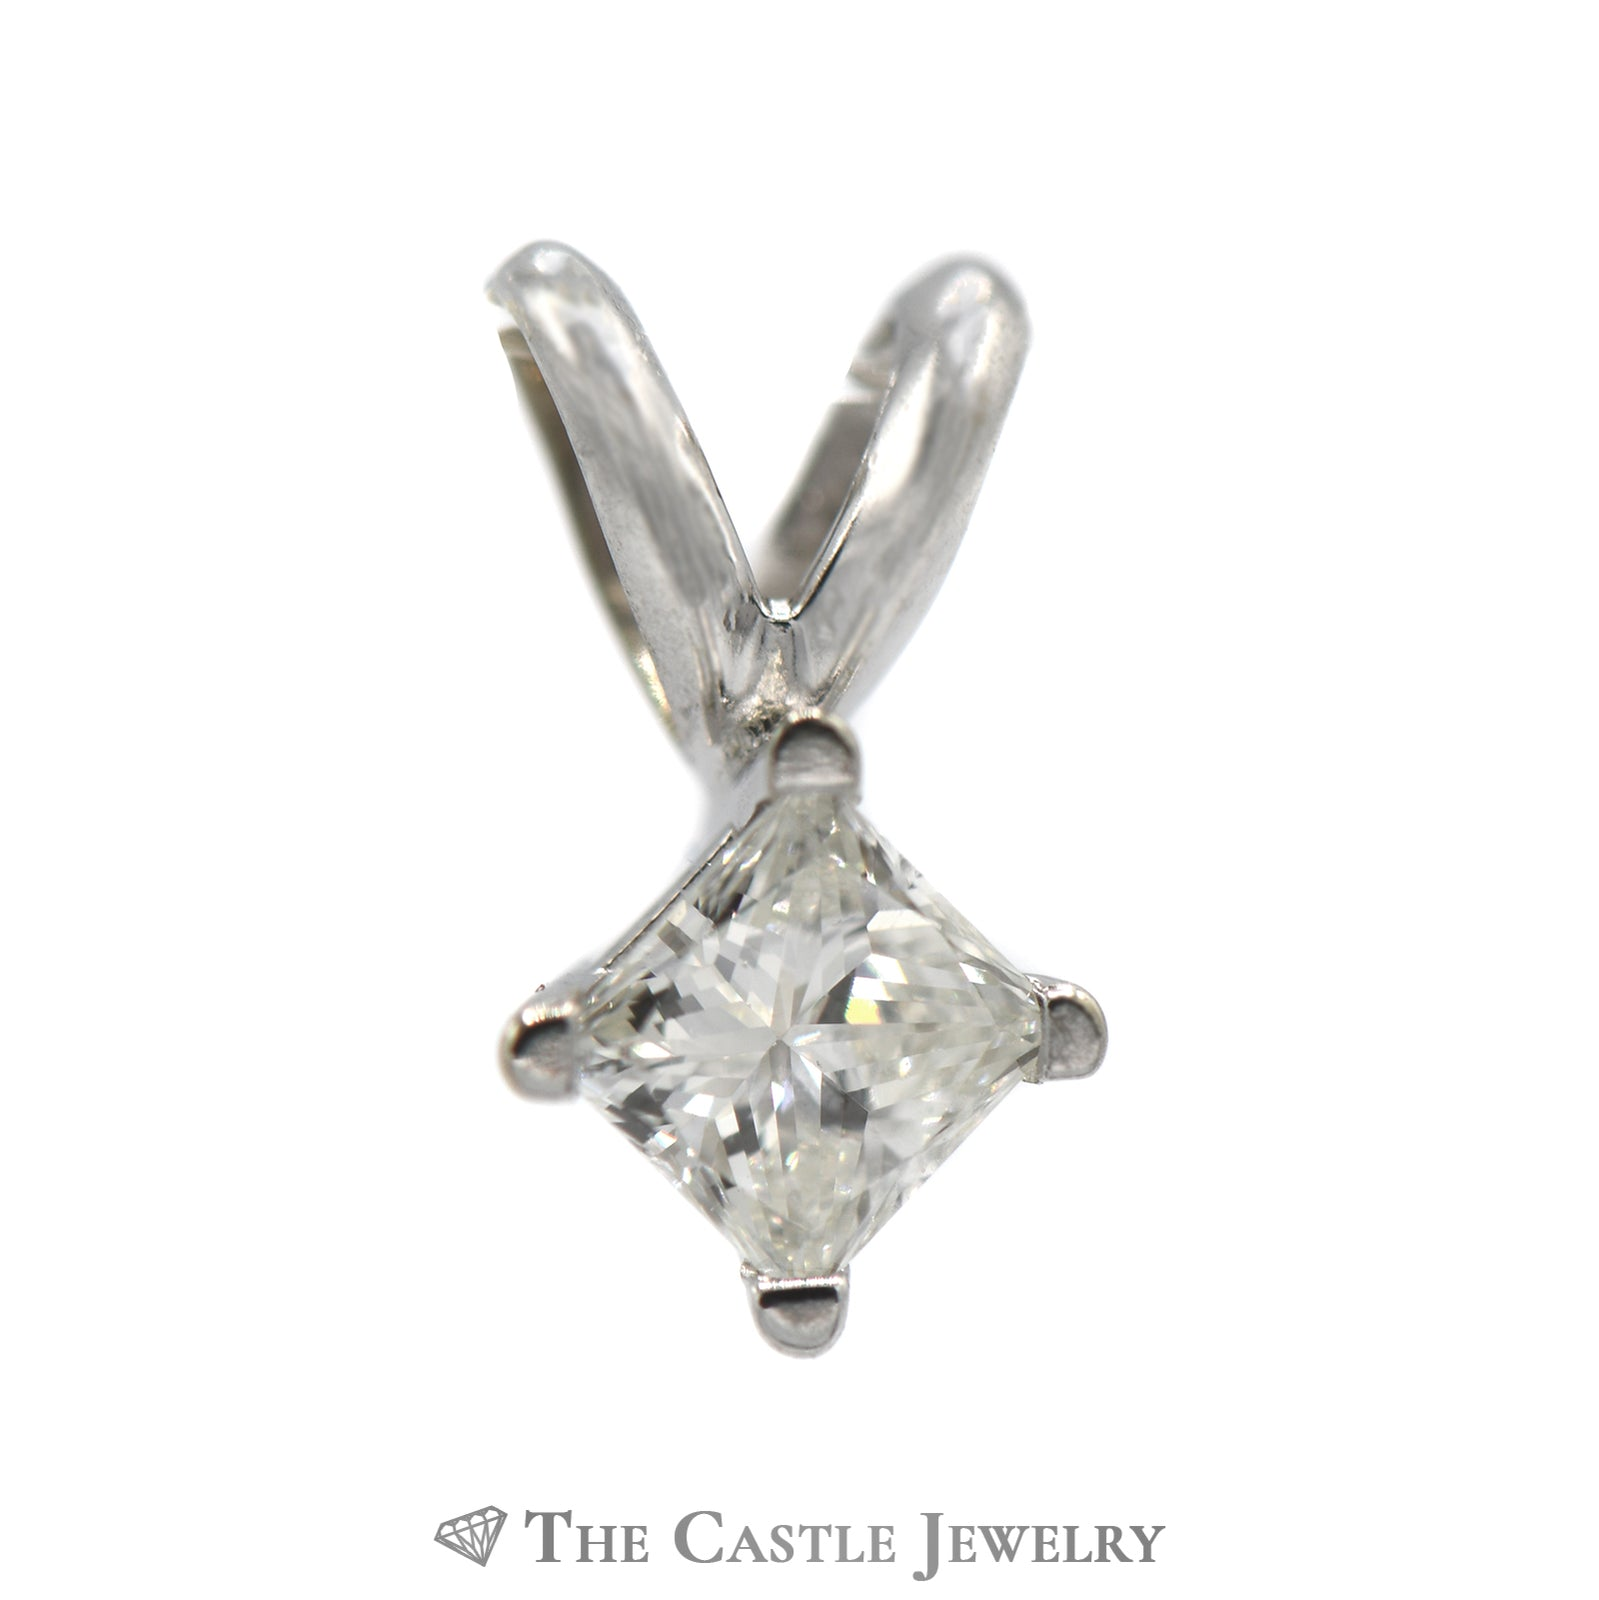 Princess Cut Diamond Solitaire Pendant .20CT In 14KT White Gold